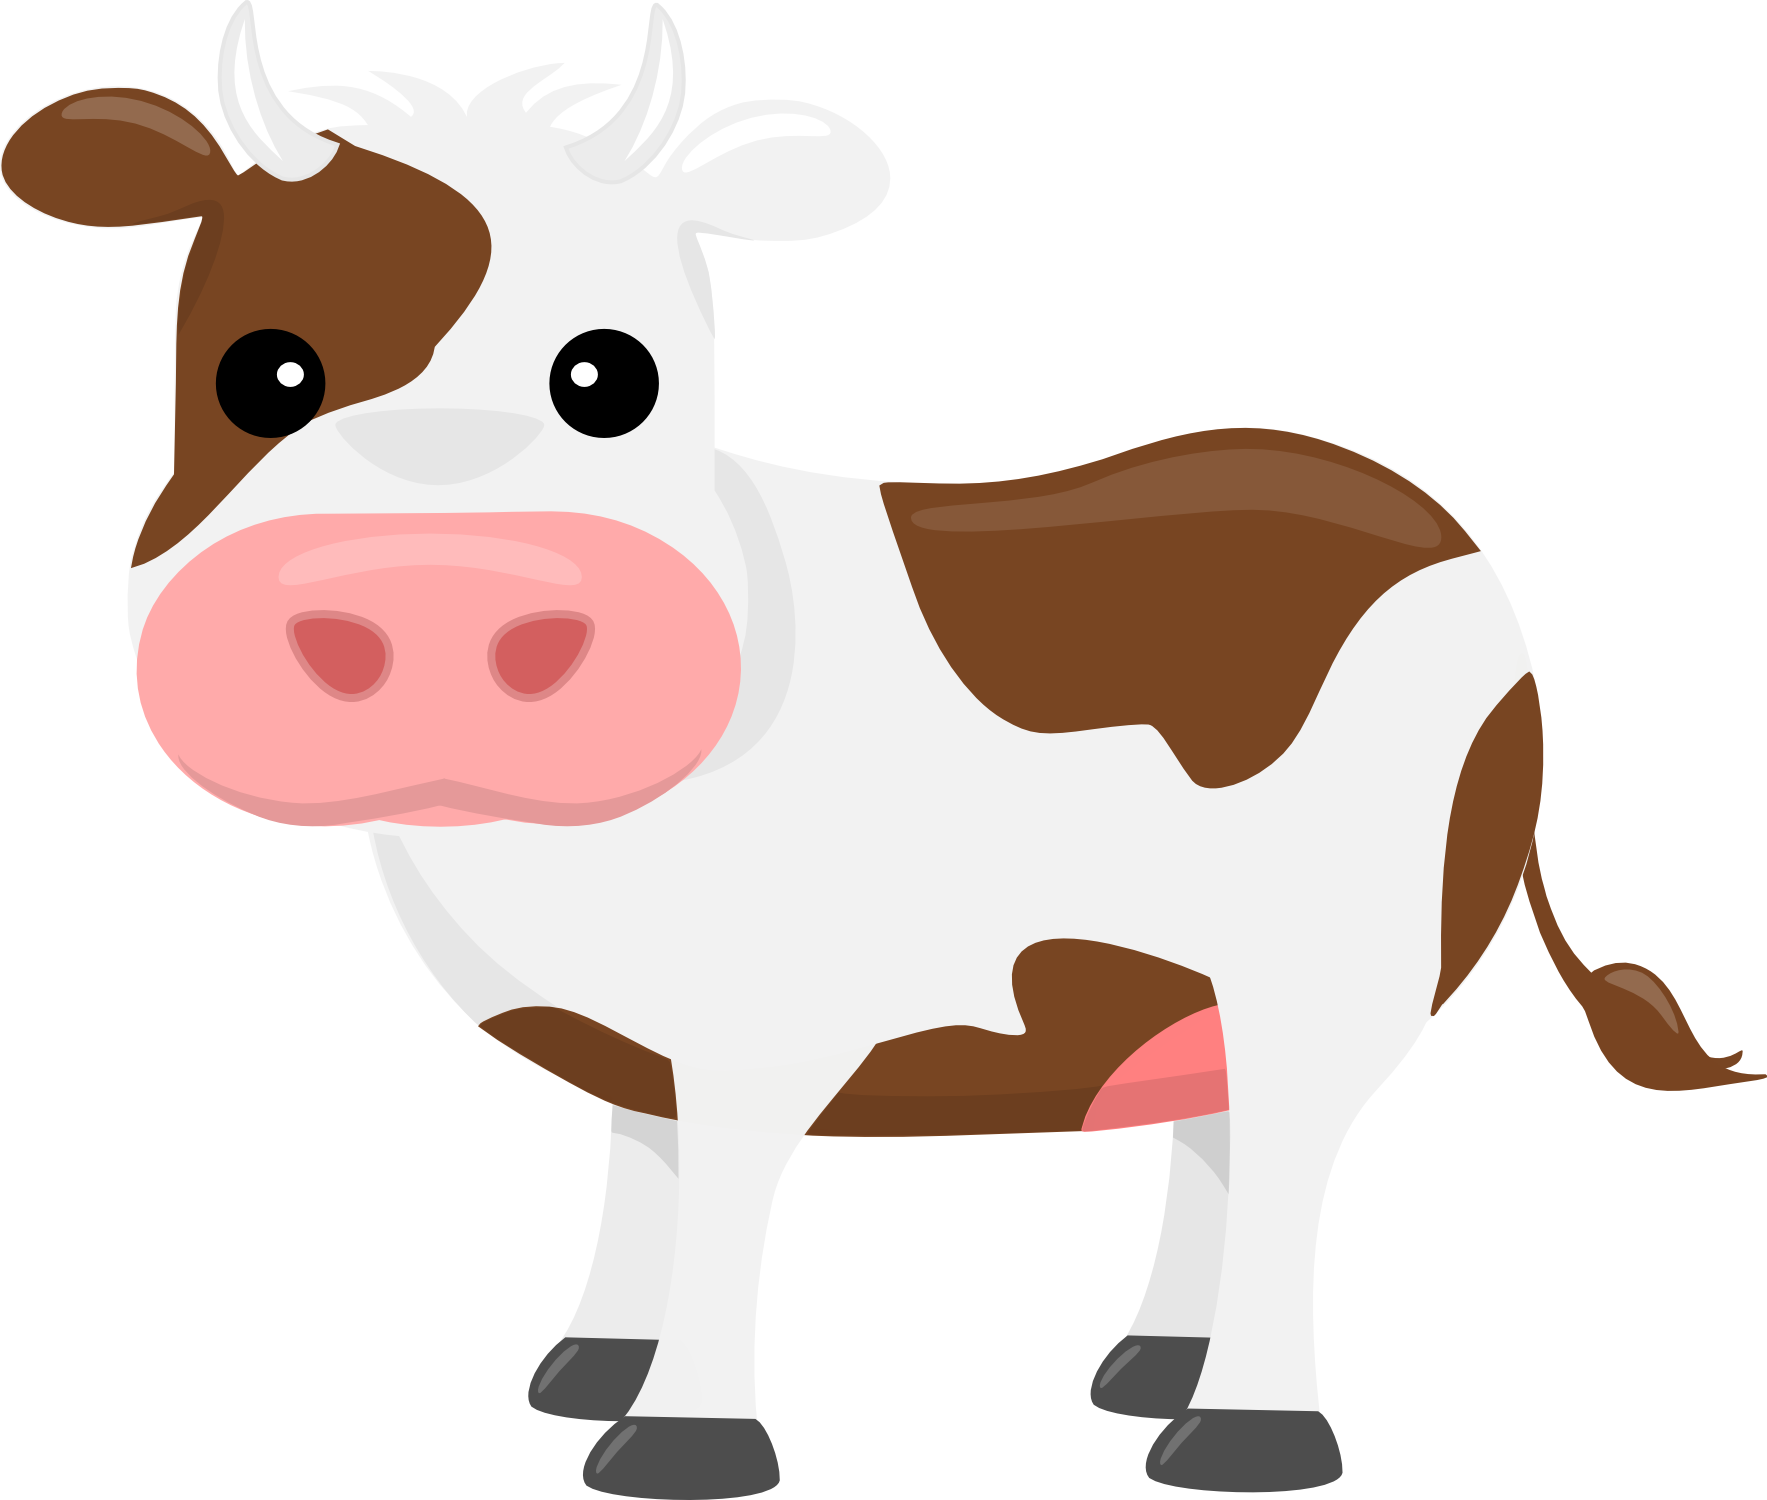 Holding a book clipart transparent background jpg On The Farm Clip-Art | Pinterest | Cow, Scrapbooking and Clip art jpg